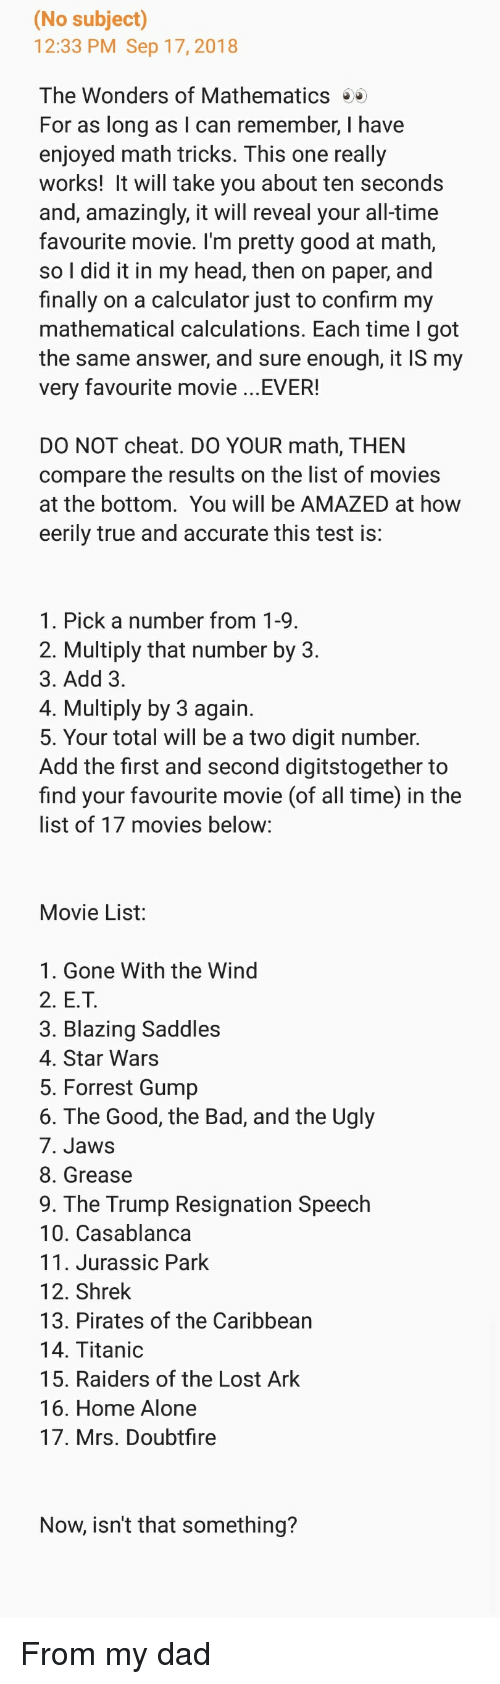 blazing saddles: (No subject)  12:33 PM Sep 17,2018  The Wonders of Mathematics  For as long as I can remember, I have  enjoyed math tricks. This one really  works! It will take you about ten seconds  and, amazingly, it will reveal your all-time  favourite movie. I'm pretty good at math,  so I did it in my head, then on paper, and  finally on a calculator just to confirm my  mathematical calculations. Each time l got  the same answer, and sure enough, it IS my  very favourite movie ...EVER!  DO NOT cheat. DO YOUR math, THEN  compare the results on the list of movies  at the bottom. You will be AMAZED at how  eerily true and accurate this test is:  1. Pick a number from 1-9  2. Multiply that number by 3.  3. Add 3  4. Multiply by 3 again  5. Your total will be a two digit number.  Add the first and second digitstogether to  find your favourite movie (of all time) in the  list of 17 movies below:  Movie List:  1. Gone With the Wind  2. E.T  3. Blazing Saddles  4. Star Wars  5. Forrest Gump  6. The Good, the Bad, and the Ugly  7. Jaws  8. Grease  9. The Trump Resignation Speech  10. Casablanca  11. Jurassic Park  12. Shrek  13. Pirates of the Caribbean  14. Titanic  15. Raiders of the Lost Ark  16. Home Alone  17. Mrs. Doubtfire  Now, isn't that something? From my dad